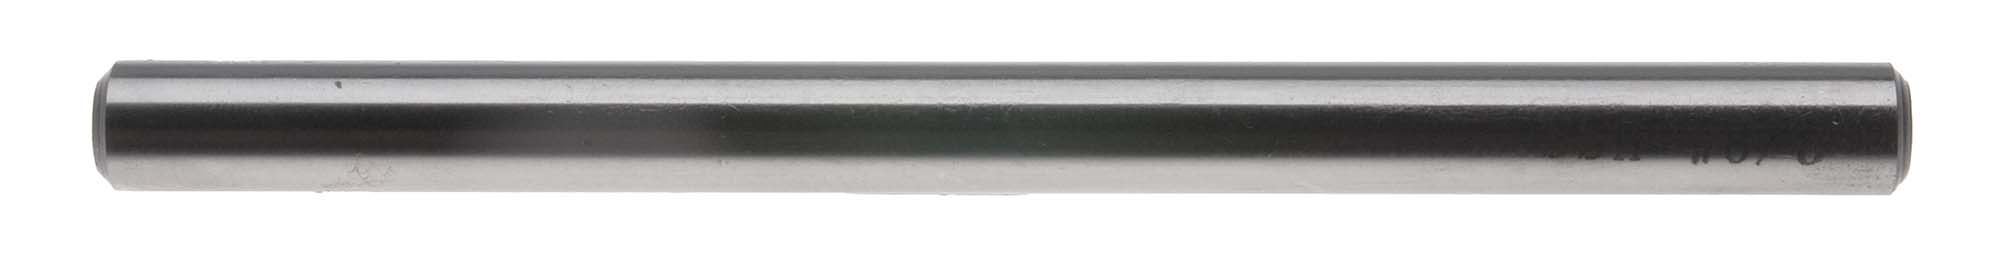 "7/16"" Jobber Length Drill Blank - High Speed Steel"